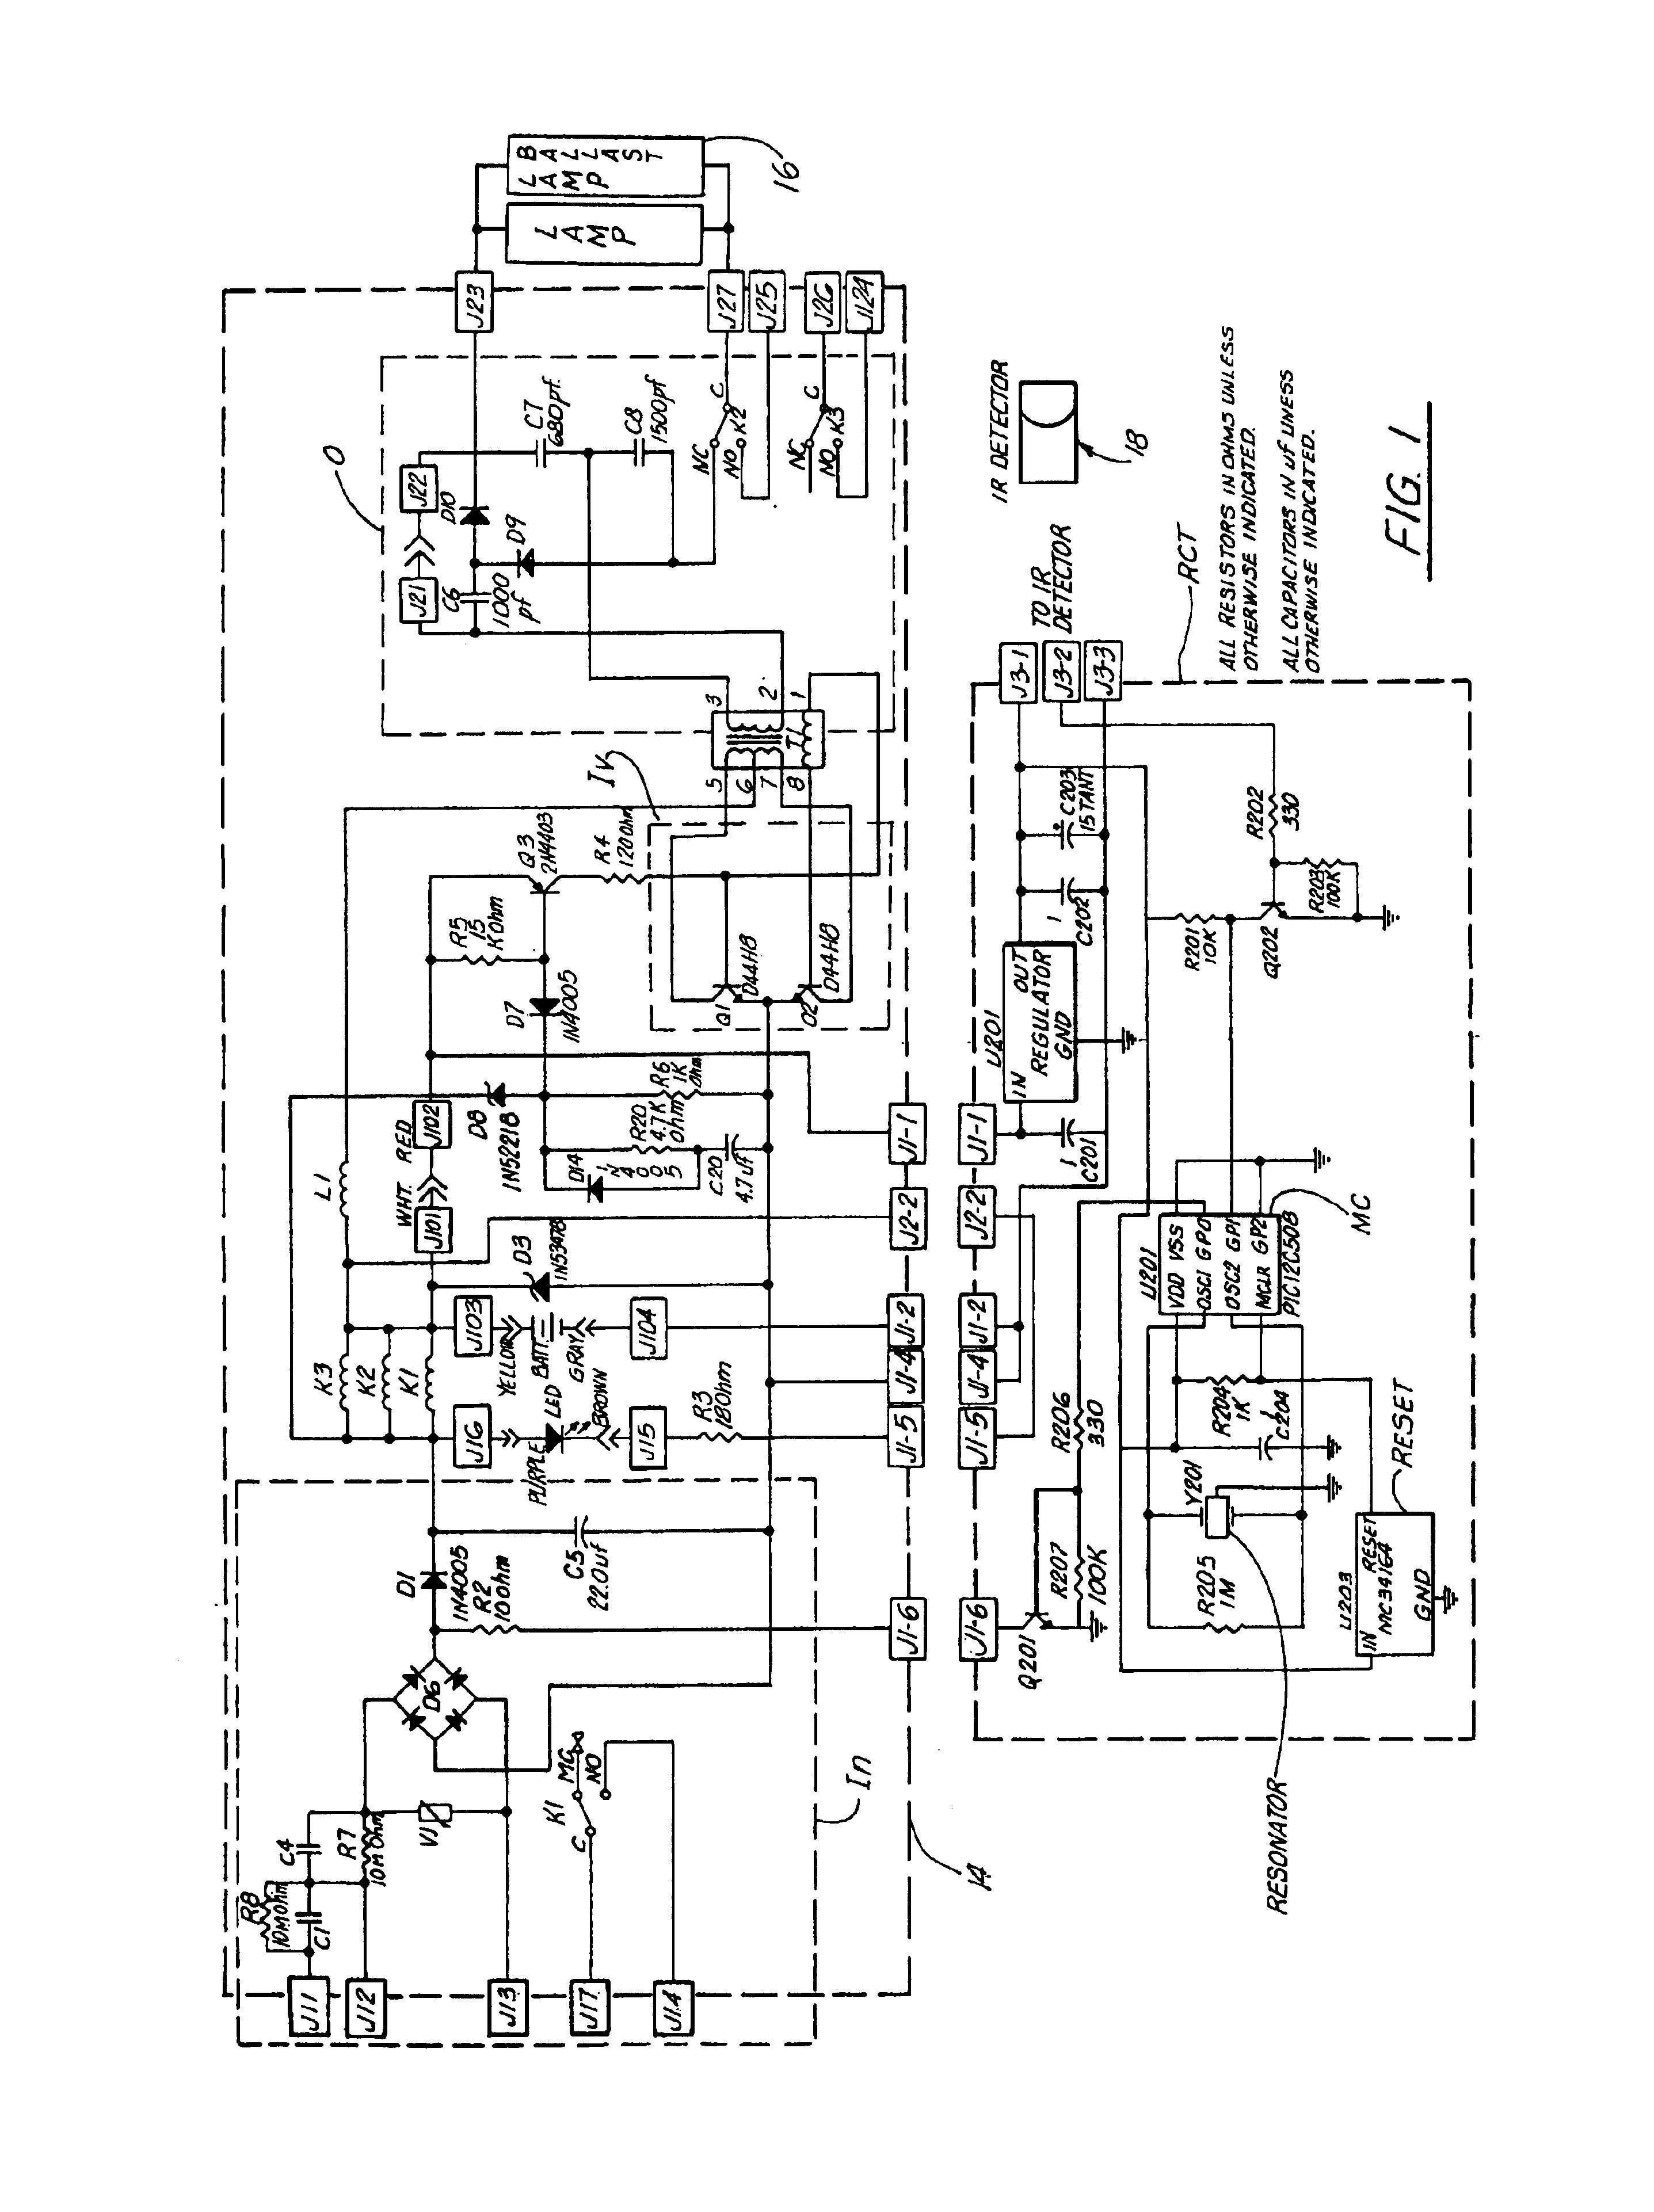 Kib M2207 Wire Schematic Kib Systems Monitor Panel Schematic Best Of Kib M2207 Wire Schematic